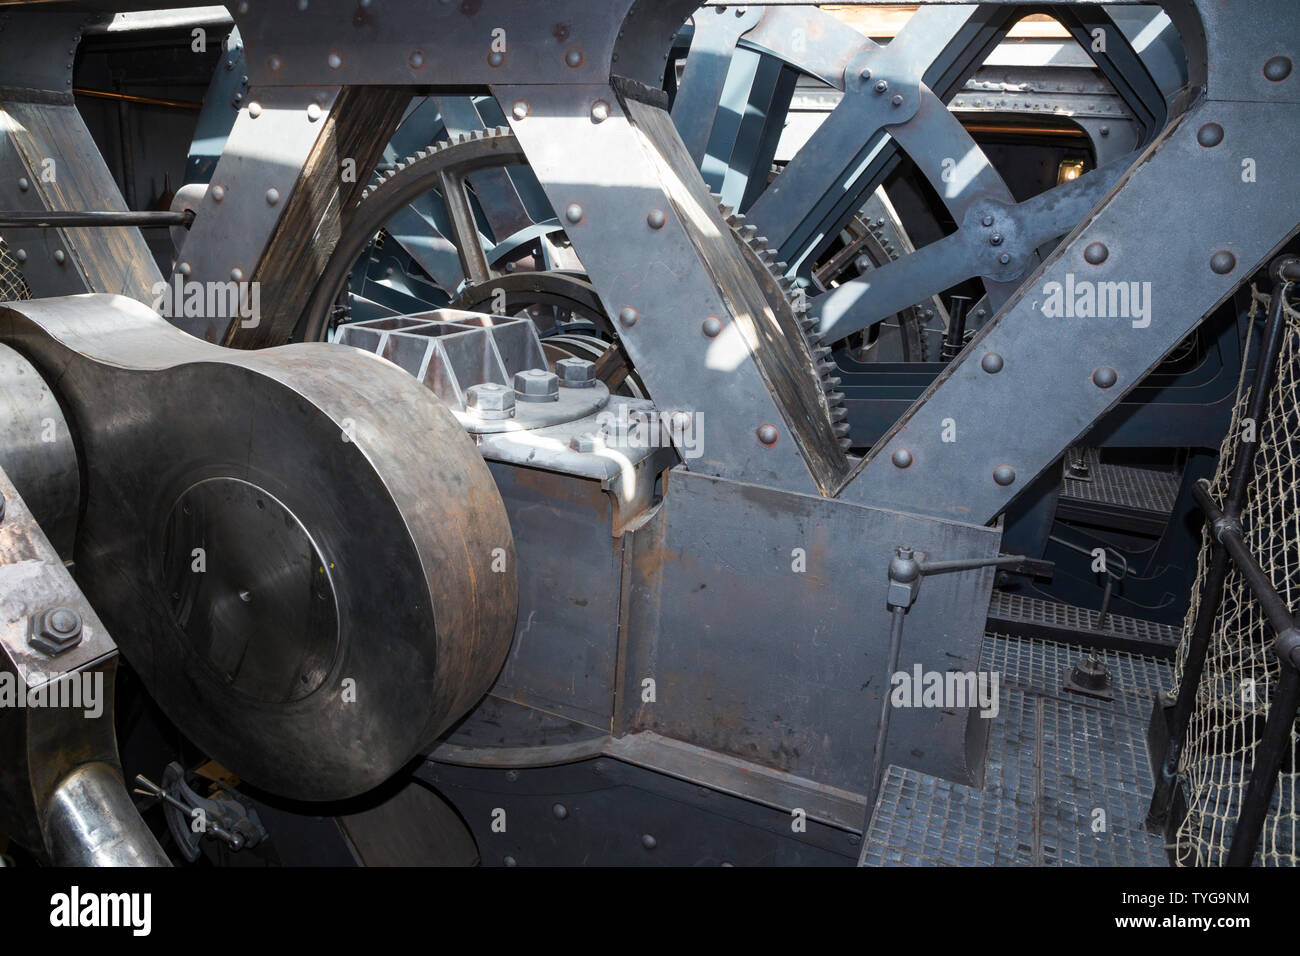 Re-created engine and the arrangement of gearwheels, gear chains and engine cylinders the SS Great Britain, Brunel's steam powered iron ship in dry dock in Bristol, UK. (109) Stock Photo